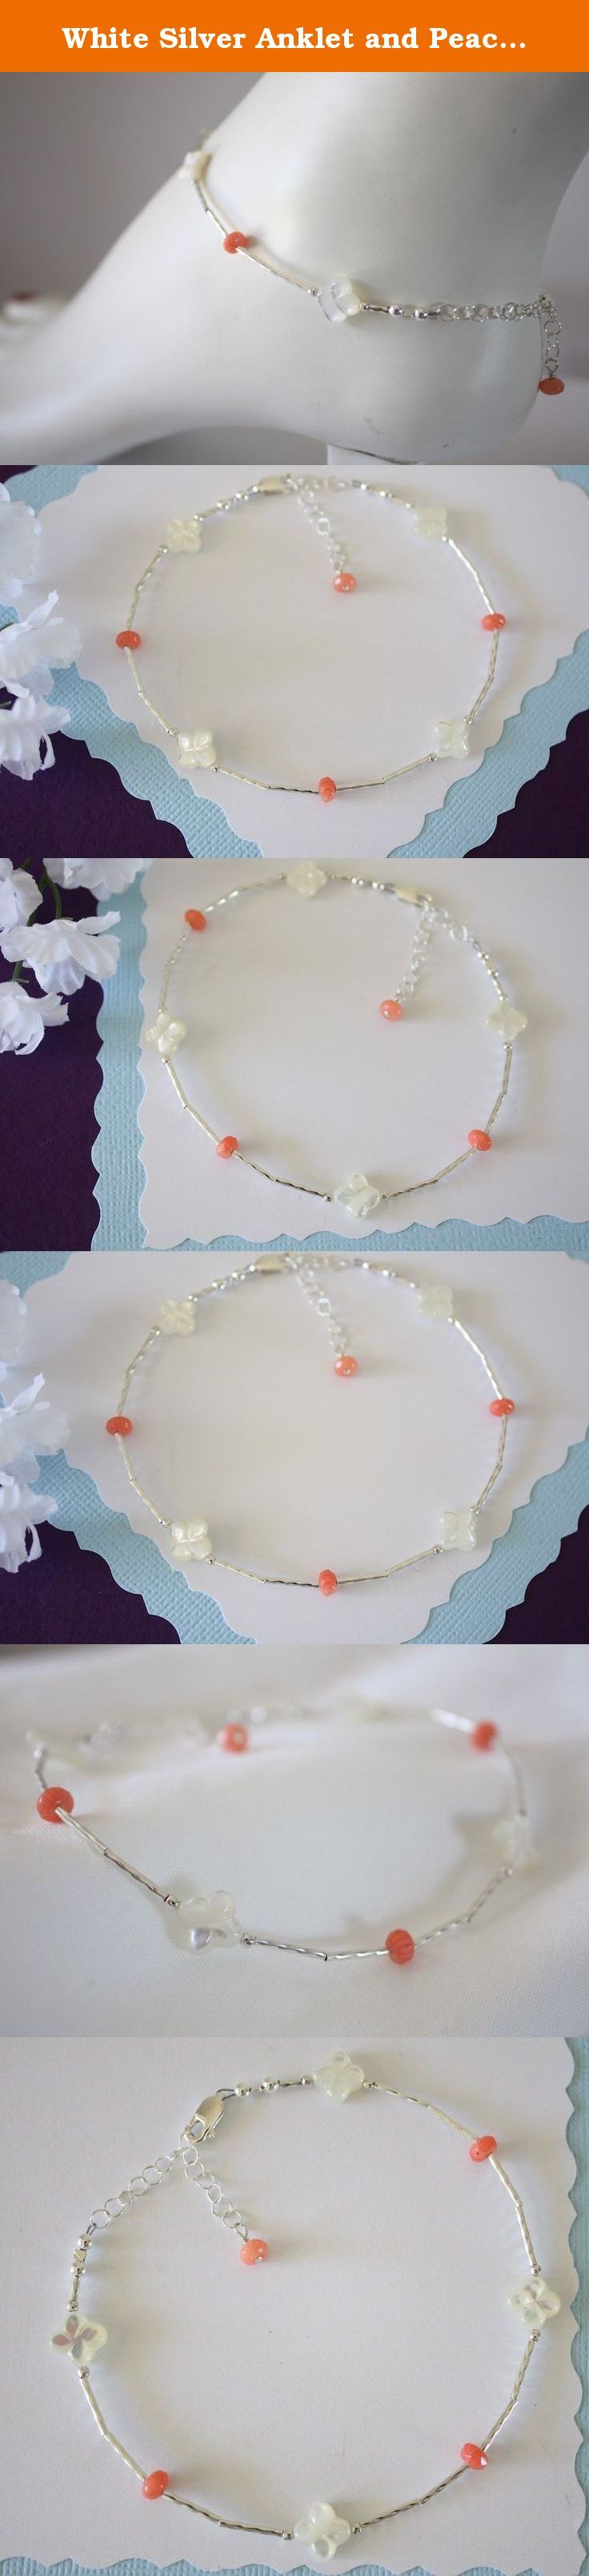 """White Silver Anklet and Peach Coral Anklet, Beach Wedding, Flower Bridesmaid Gift. This fun anklet is handmade with beautiful Faucet Peach Coral, hand carved Mother of Pearl flowers and Liquid Sterling Silver.*** Average length is 10"""" but choose your length upon checkout. Comes with organza gift pouch, ready for gift giving."""